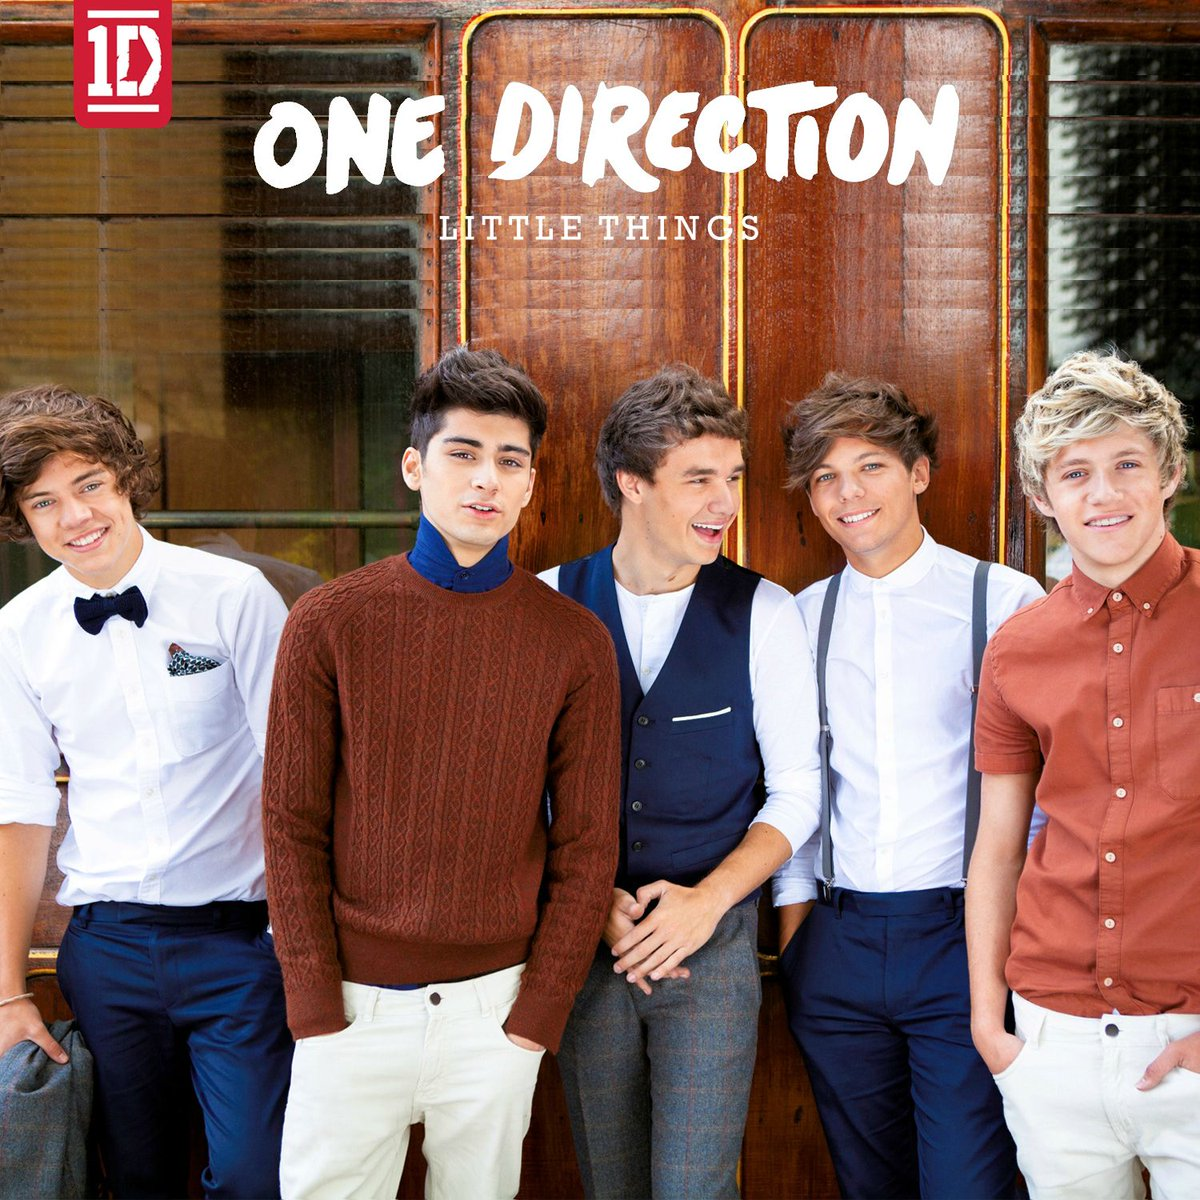 'Little Things' by @onedirection has just gone Platinum! Congratulations, boys. #bpiAwards https://t.co/e3Rr05Xj10